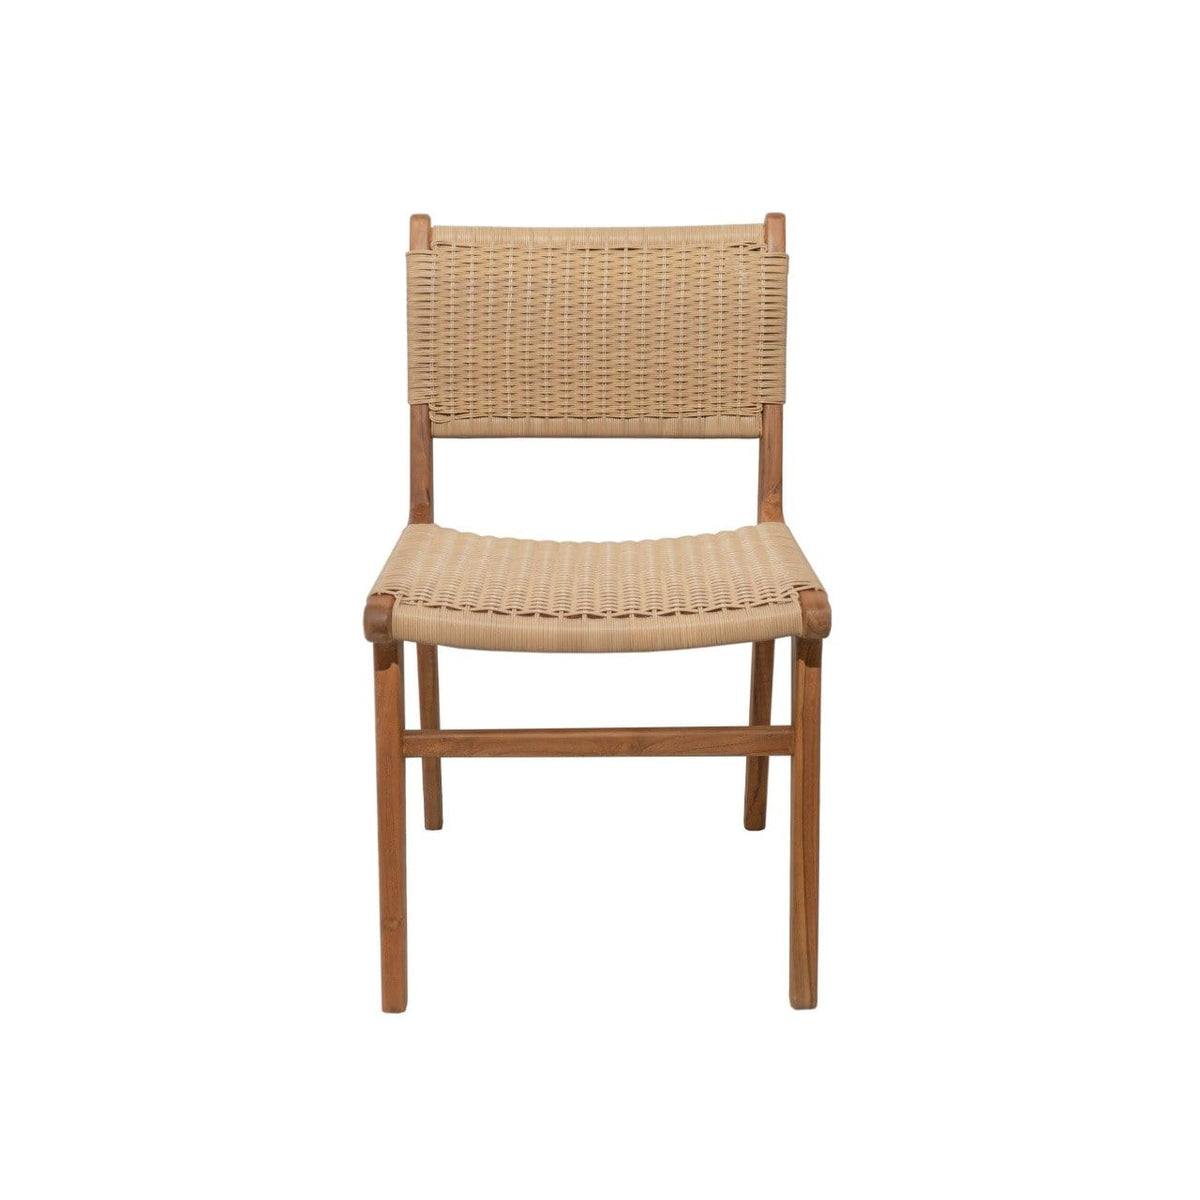 MARILOU SHOP Chairs Chair Milan Creta